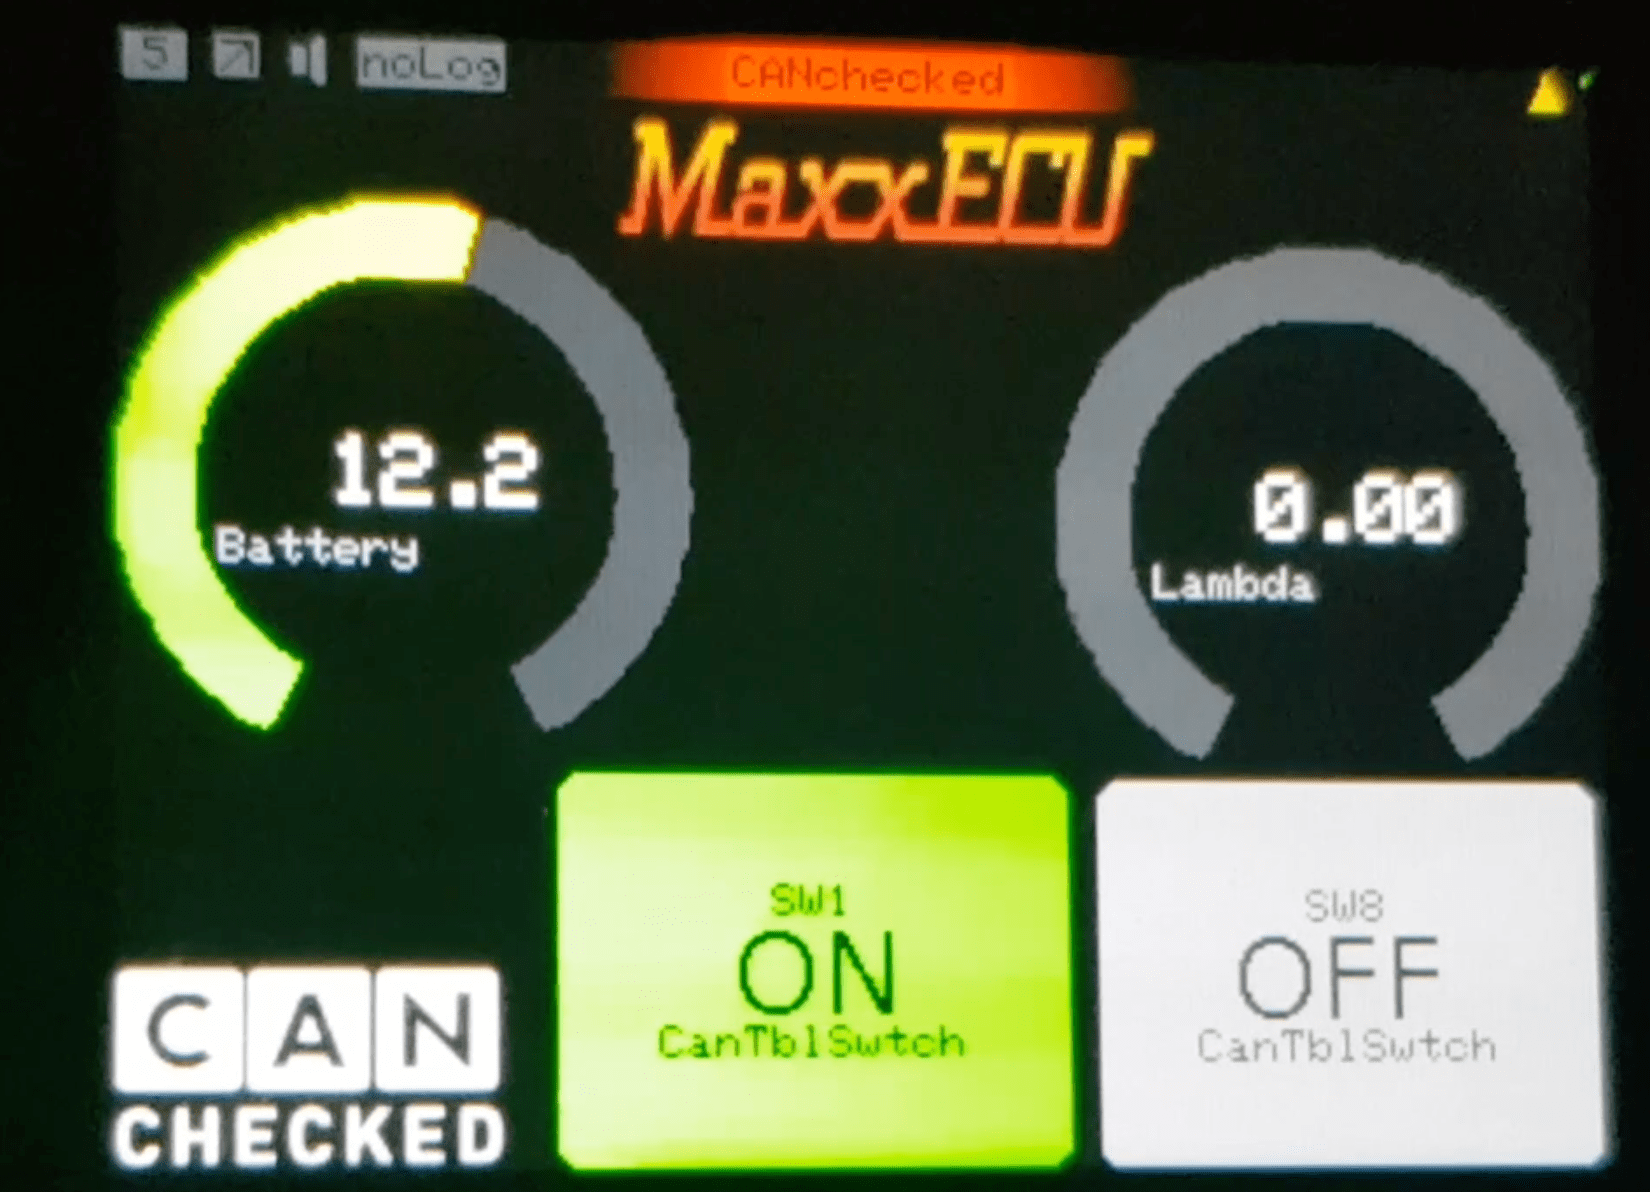 MaxxECU can bus switching